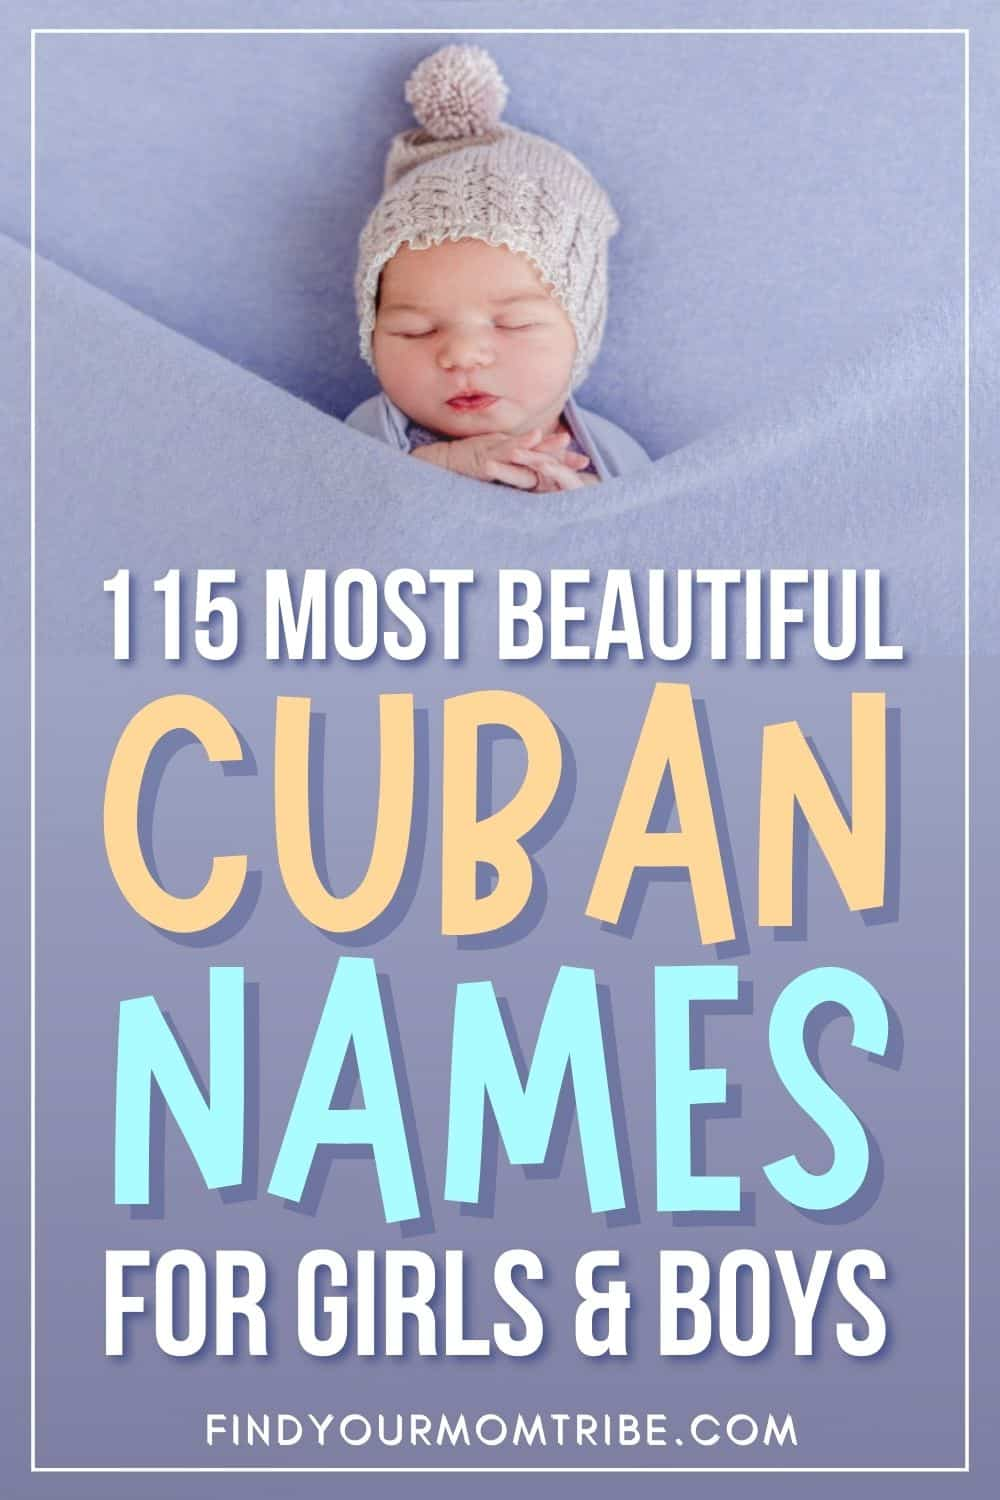 115 Most Beautiful Cuban Names For Girls And Boys With Meanings Pinterest